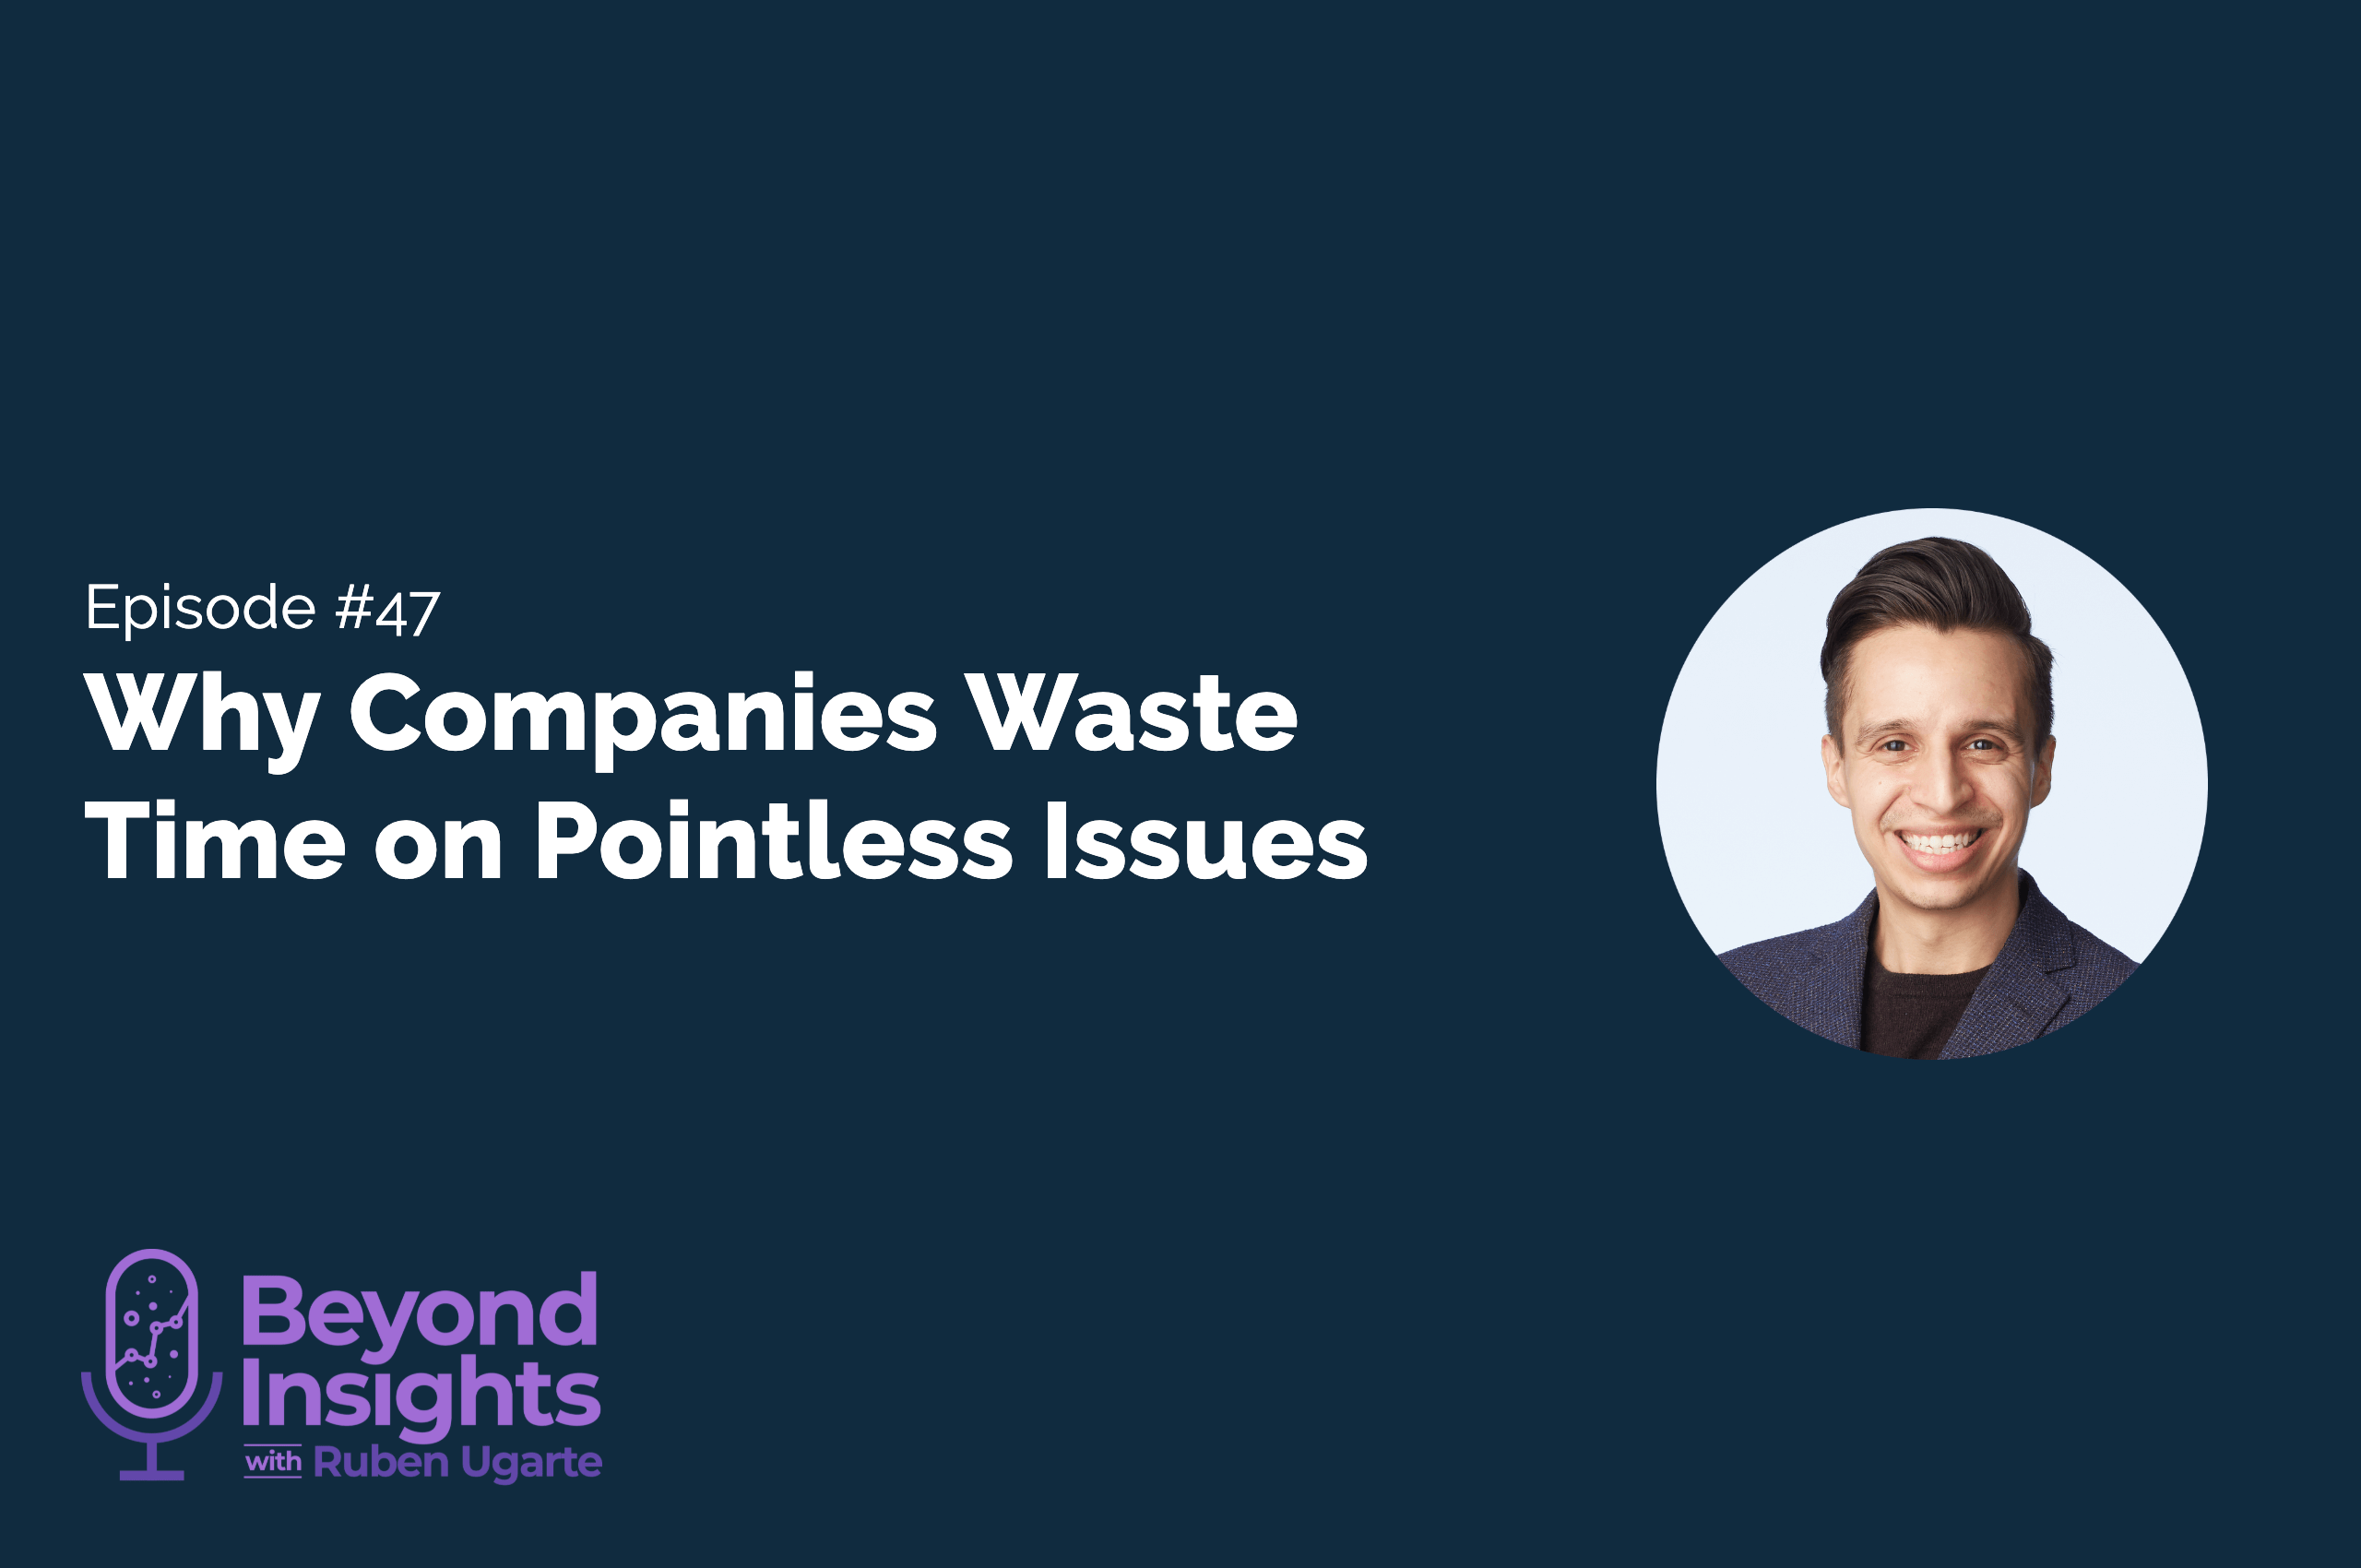 Why Companies Waste Time on Pointless Issues